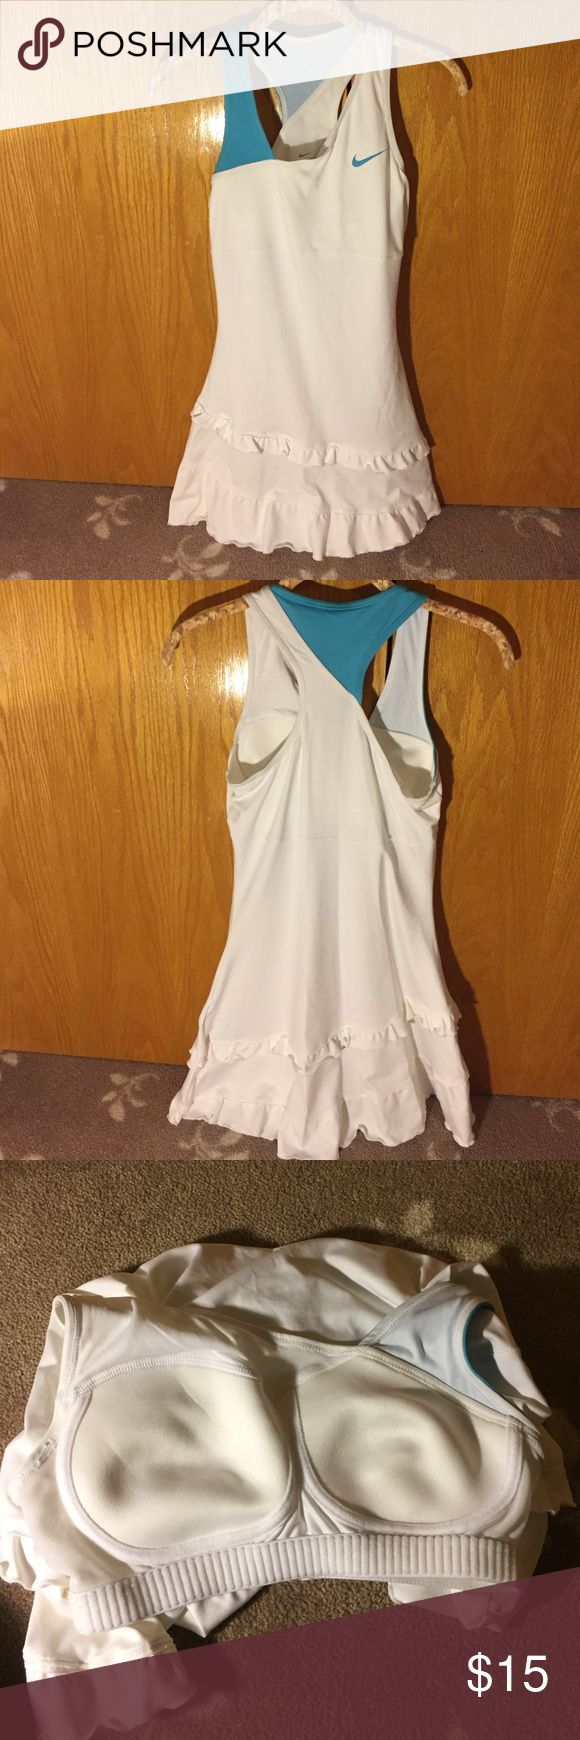 Nike tennis dress Nike tennis dress. In perfect condition. Material has stretch to it. Comes to mid thigh in length. Nike Dresses Mini